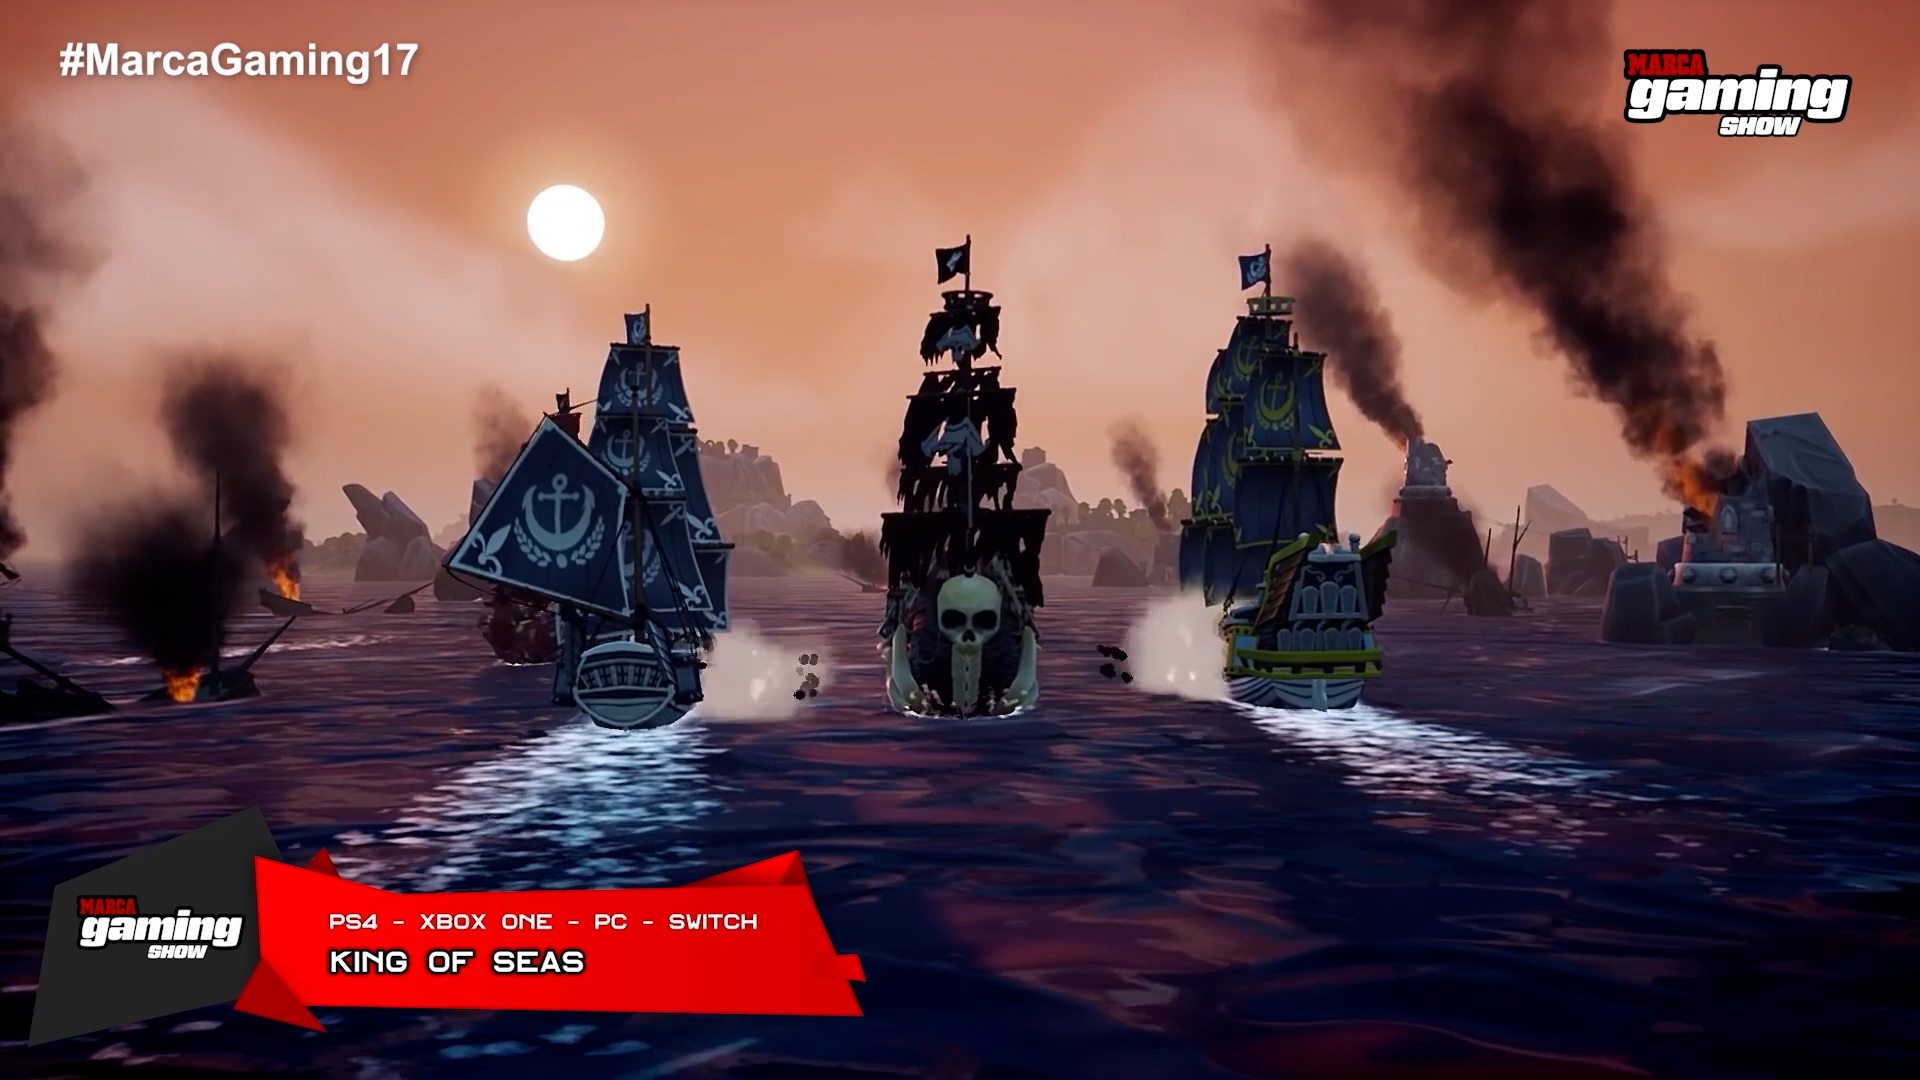 King of Seas (PC - PS4 - XBOX ONE - SWITCH)